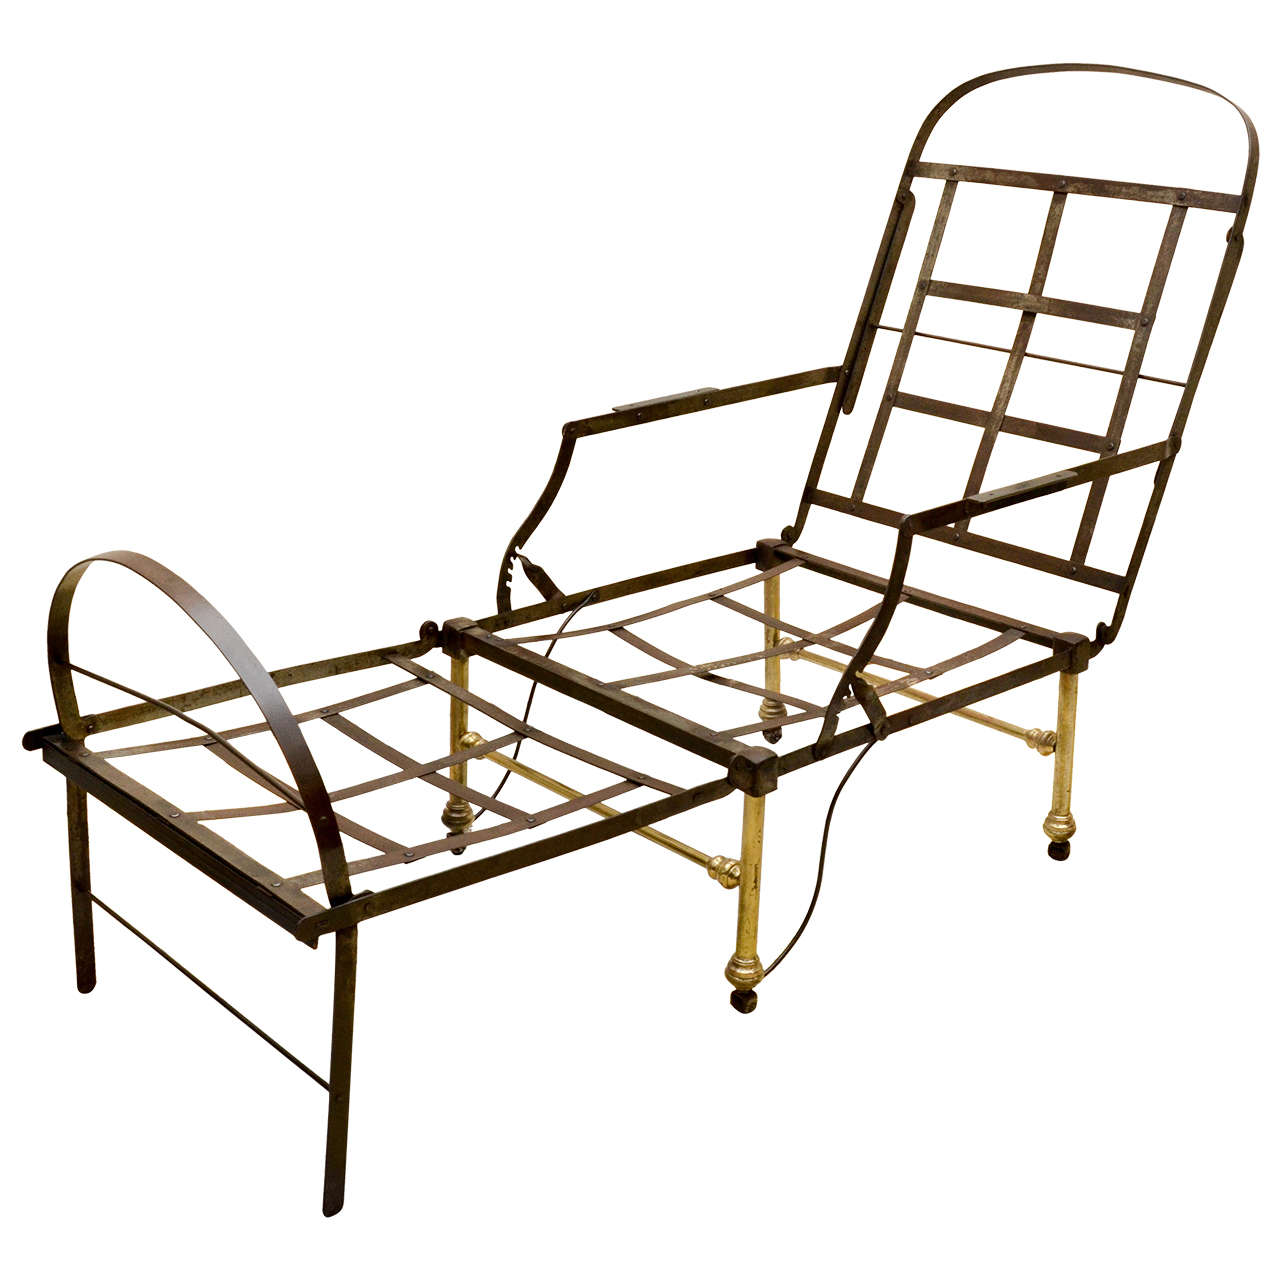 19th century english polished steel campaign chaise longue at 1stdibs. Black Bedroom Furniture Sets. Home Design Ideas